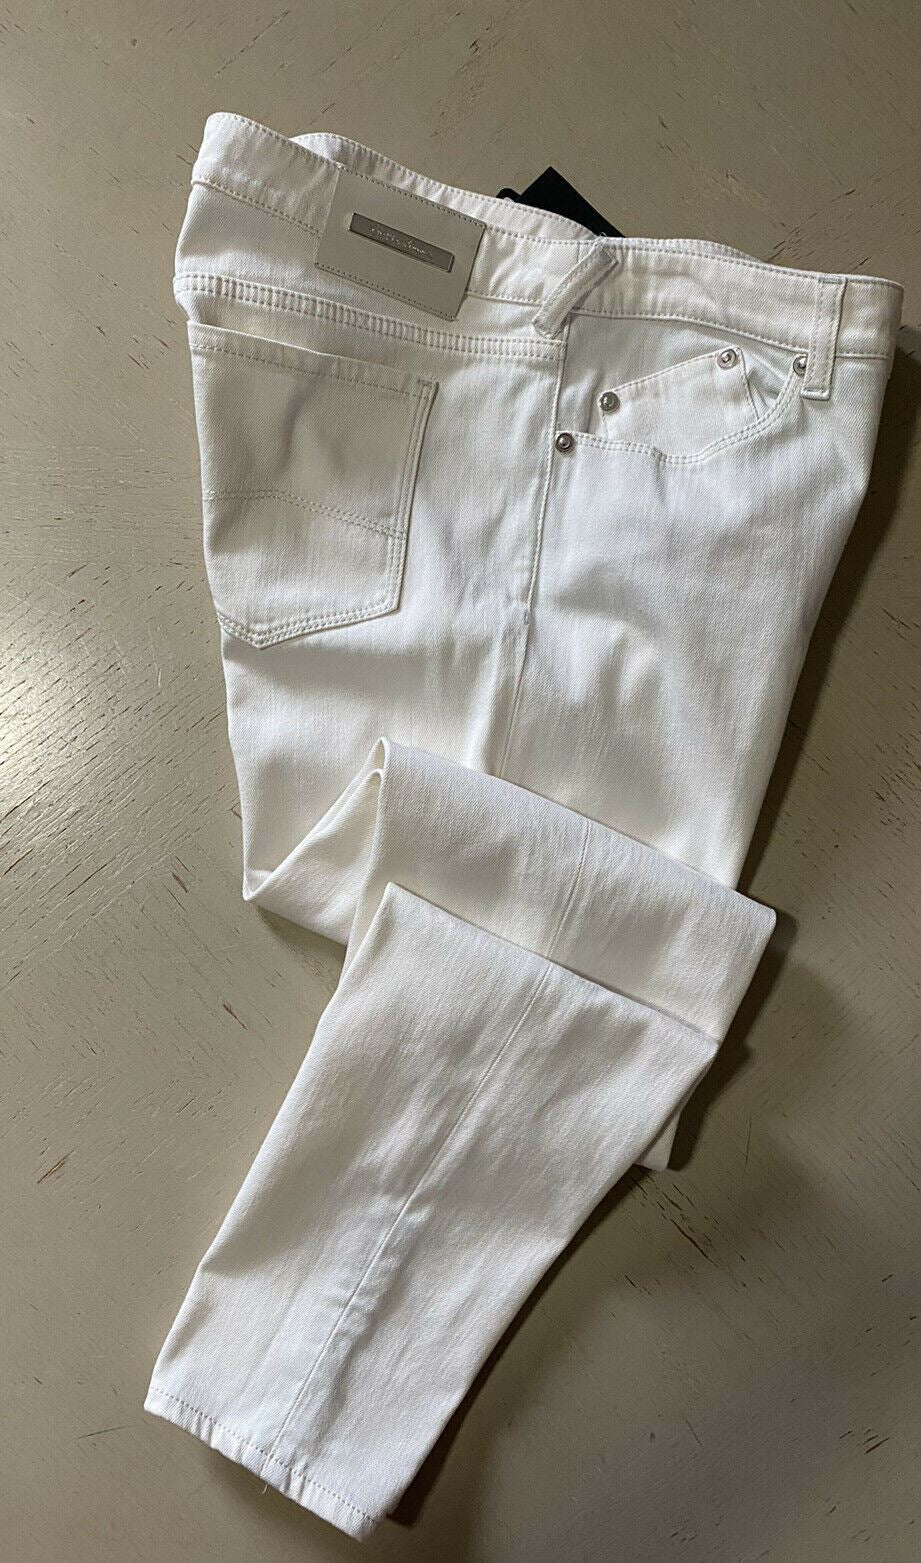 New $1095 Giorgio Armani Women's Pants Jeans White Size 31 Made In Italy